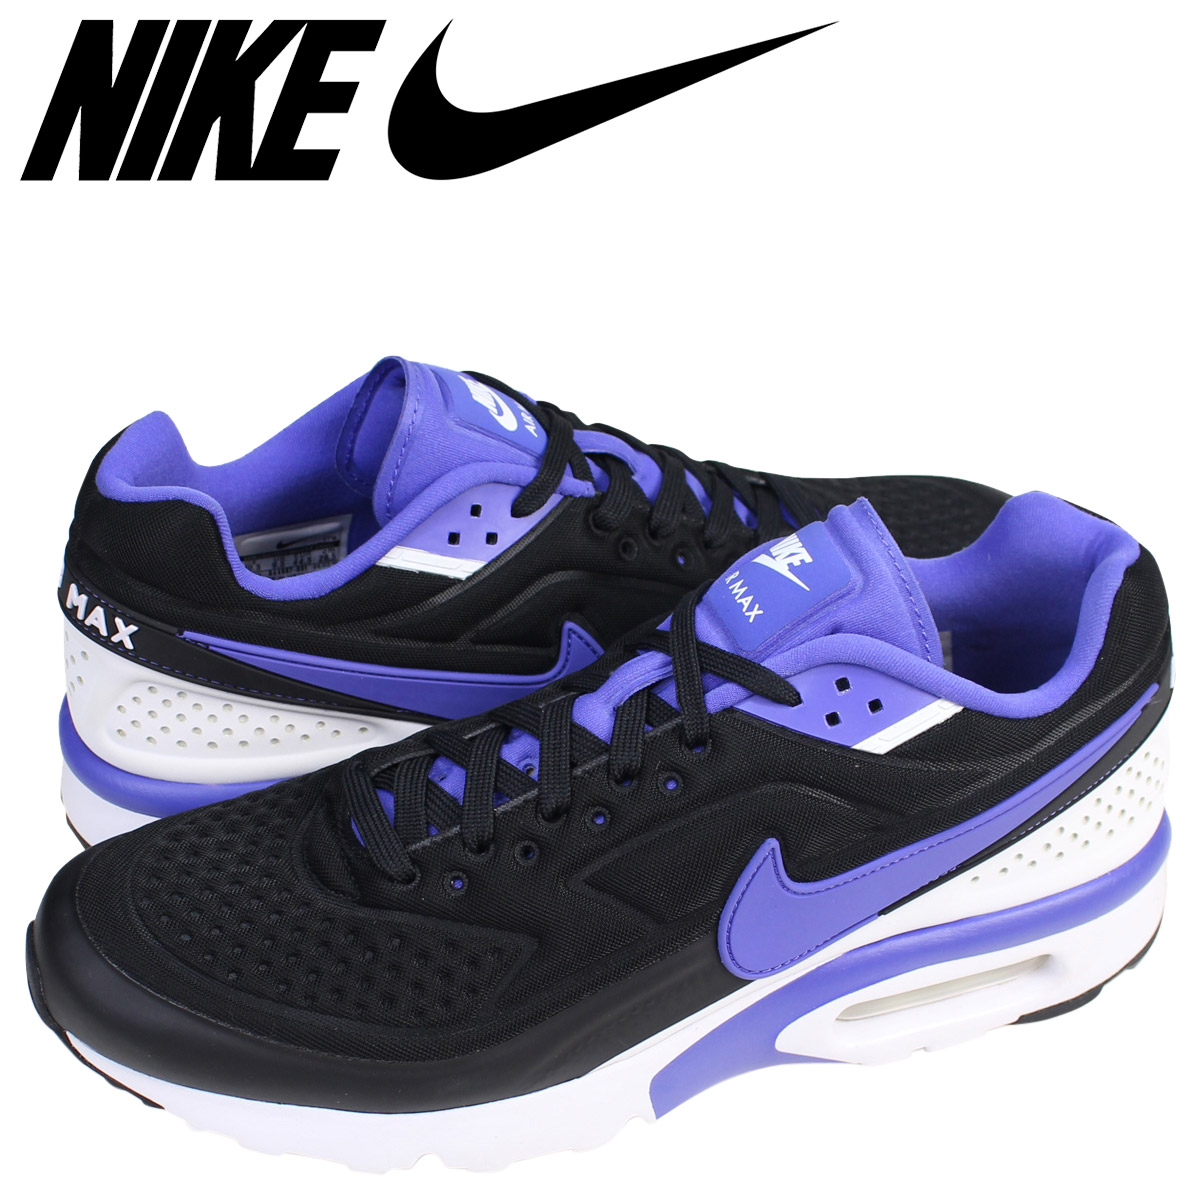 meilleure sélection d8942 16b07 Nike NIKE Air Max sneakers AIR MAX BW ULTRA SE 844,967-051 big window men  shoes black